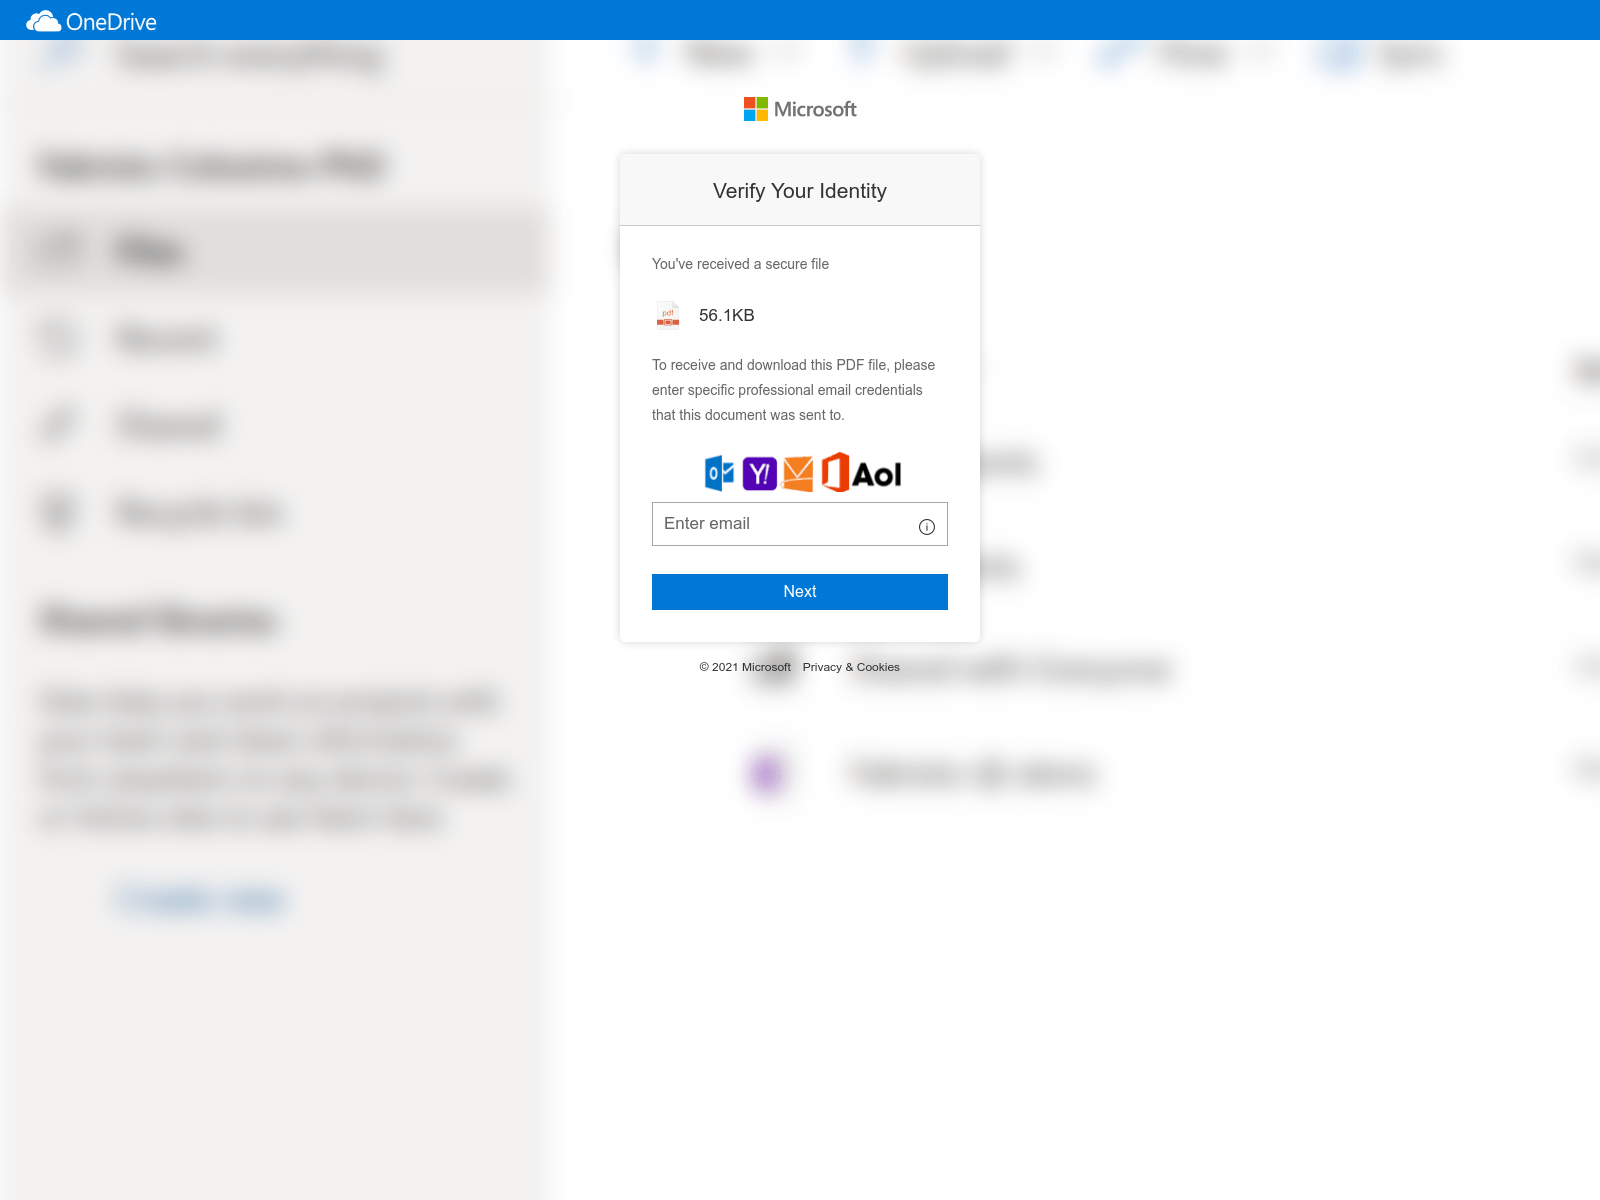 Another malicious login request impersonating Microsoft. Attackers often attempt to create a sense of legitimacy through the use of company logos as shown.